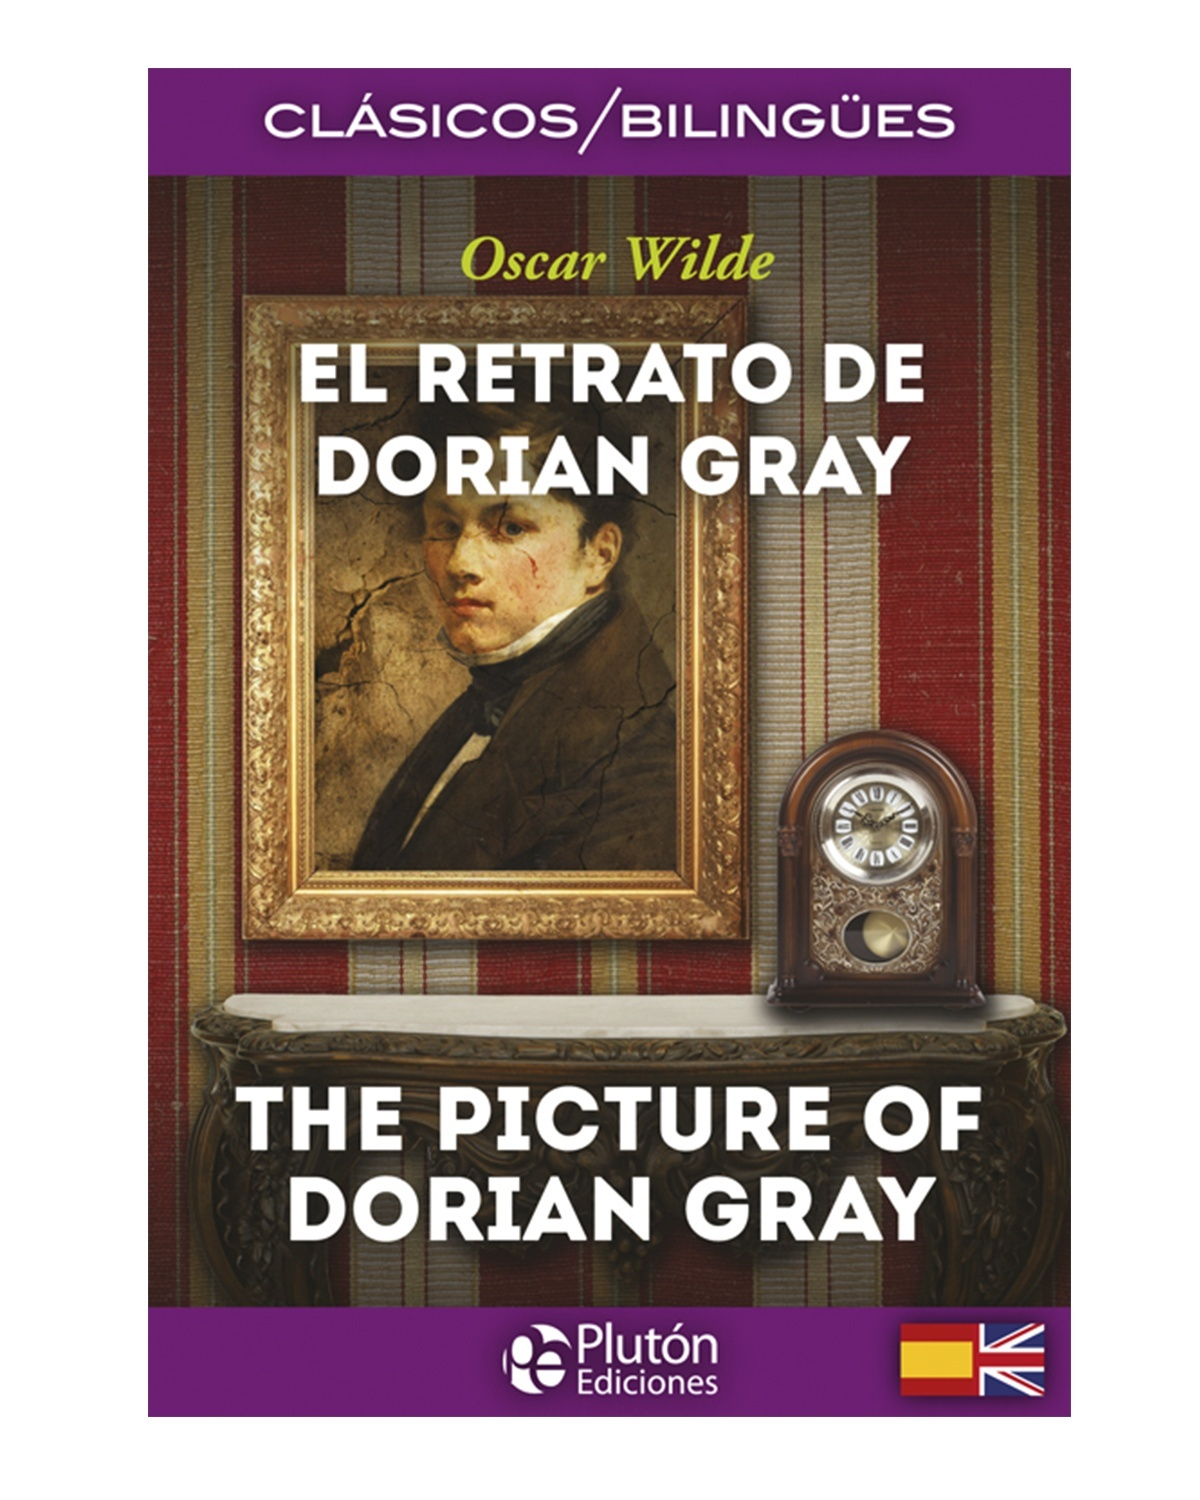 El Retrato de Dorian Gray / The picture of Dorian Gray